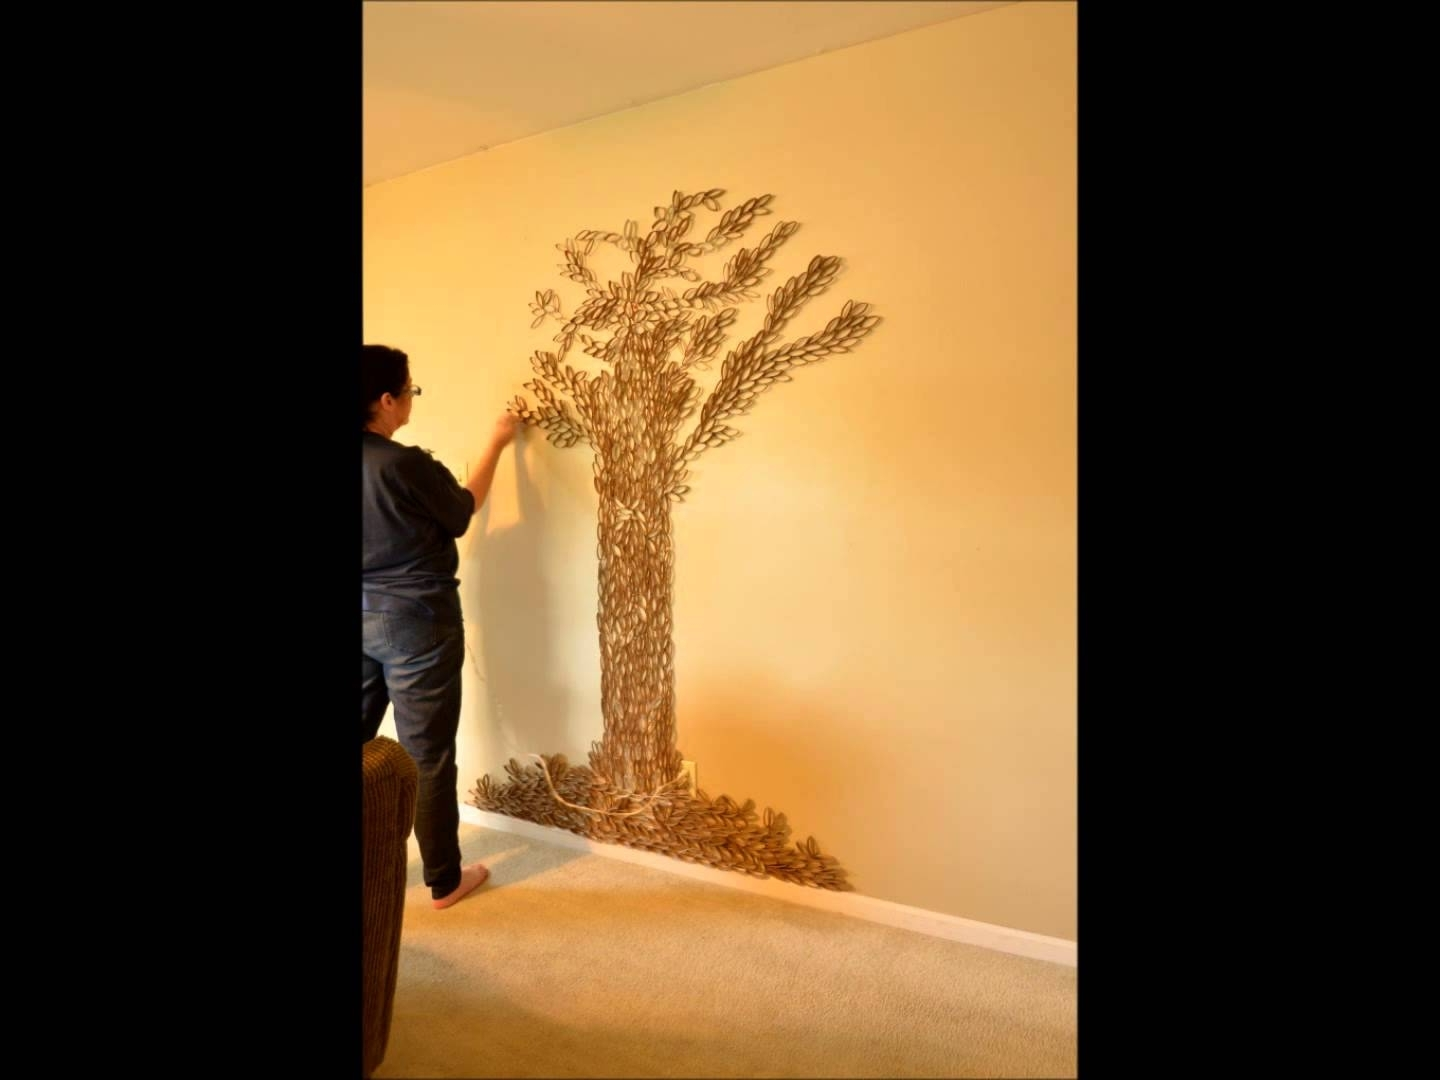 Favorite Tree Sculpture Wall Art Pertaining To Tree Of Life Wall Art – 7Ft Paper Roll Sculpture In 1 Minute (View 3 of 15)